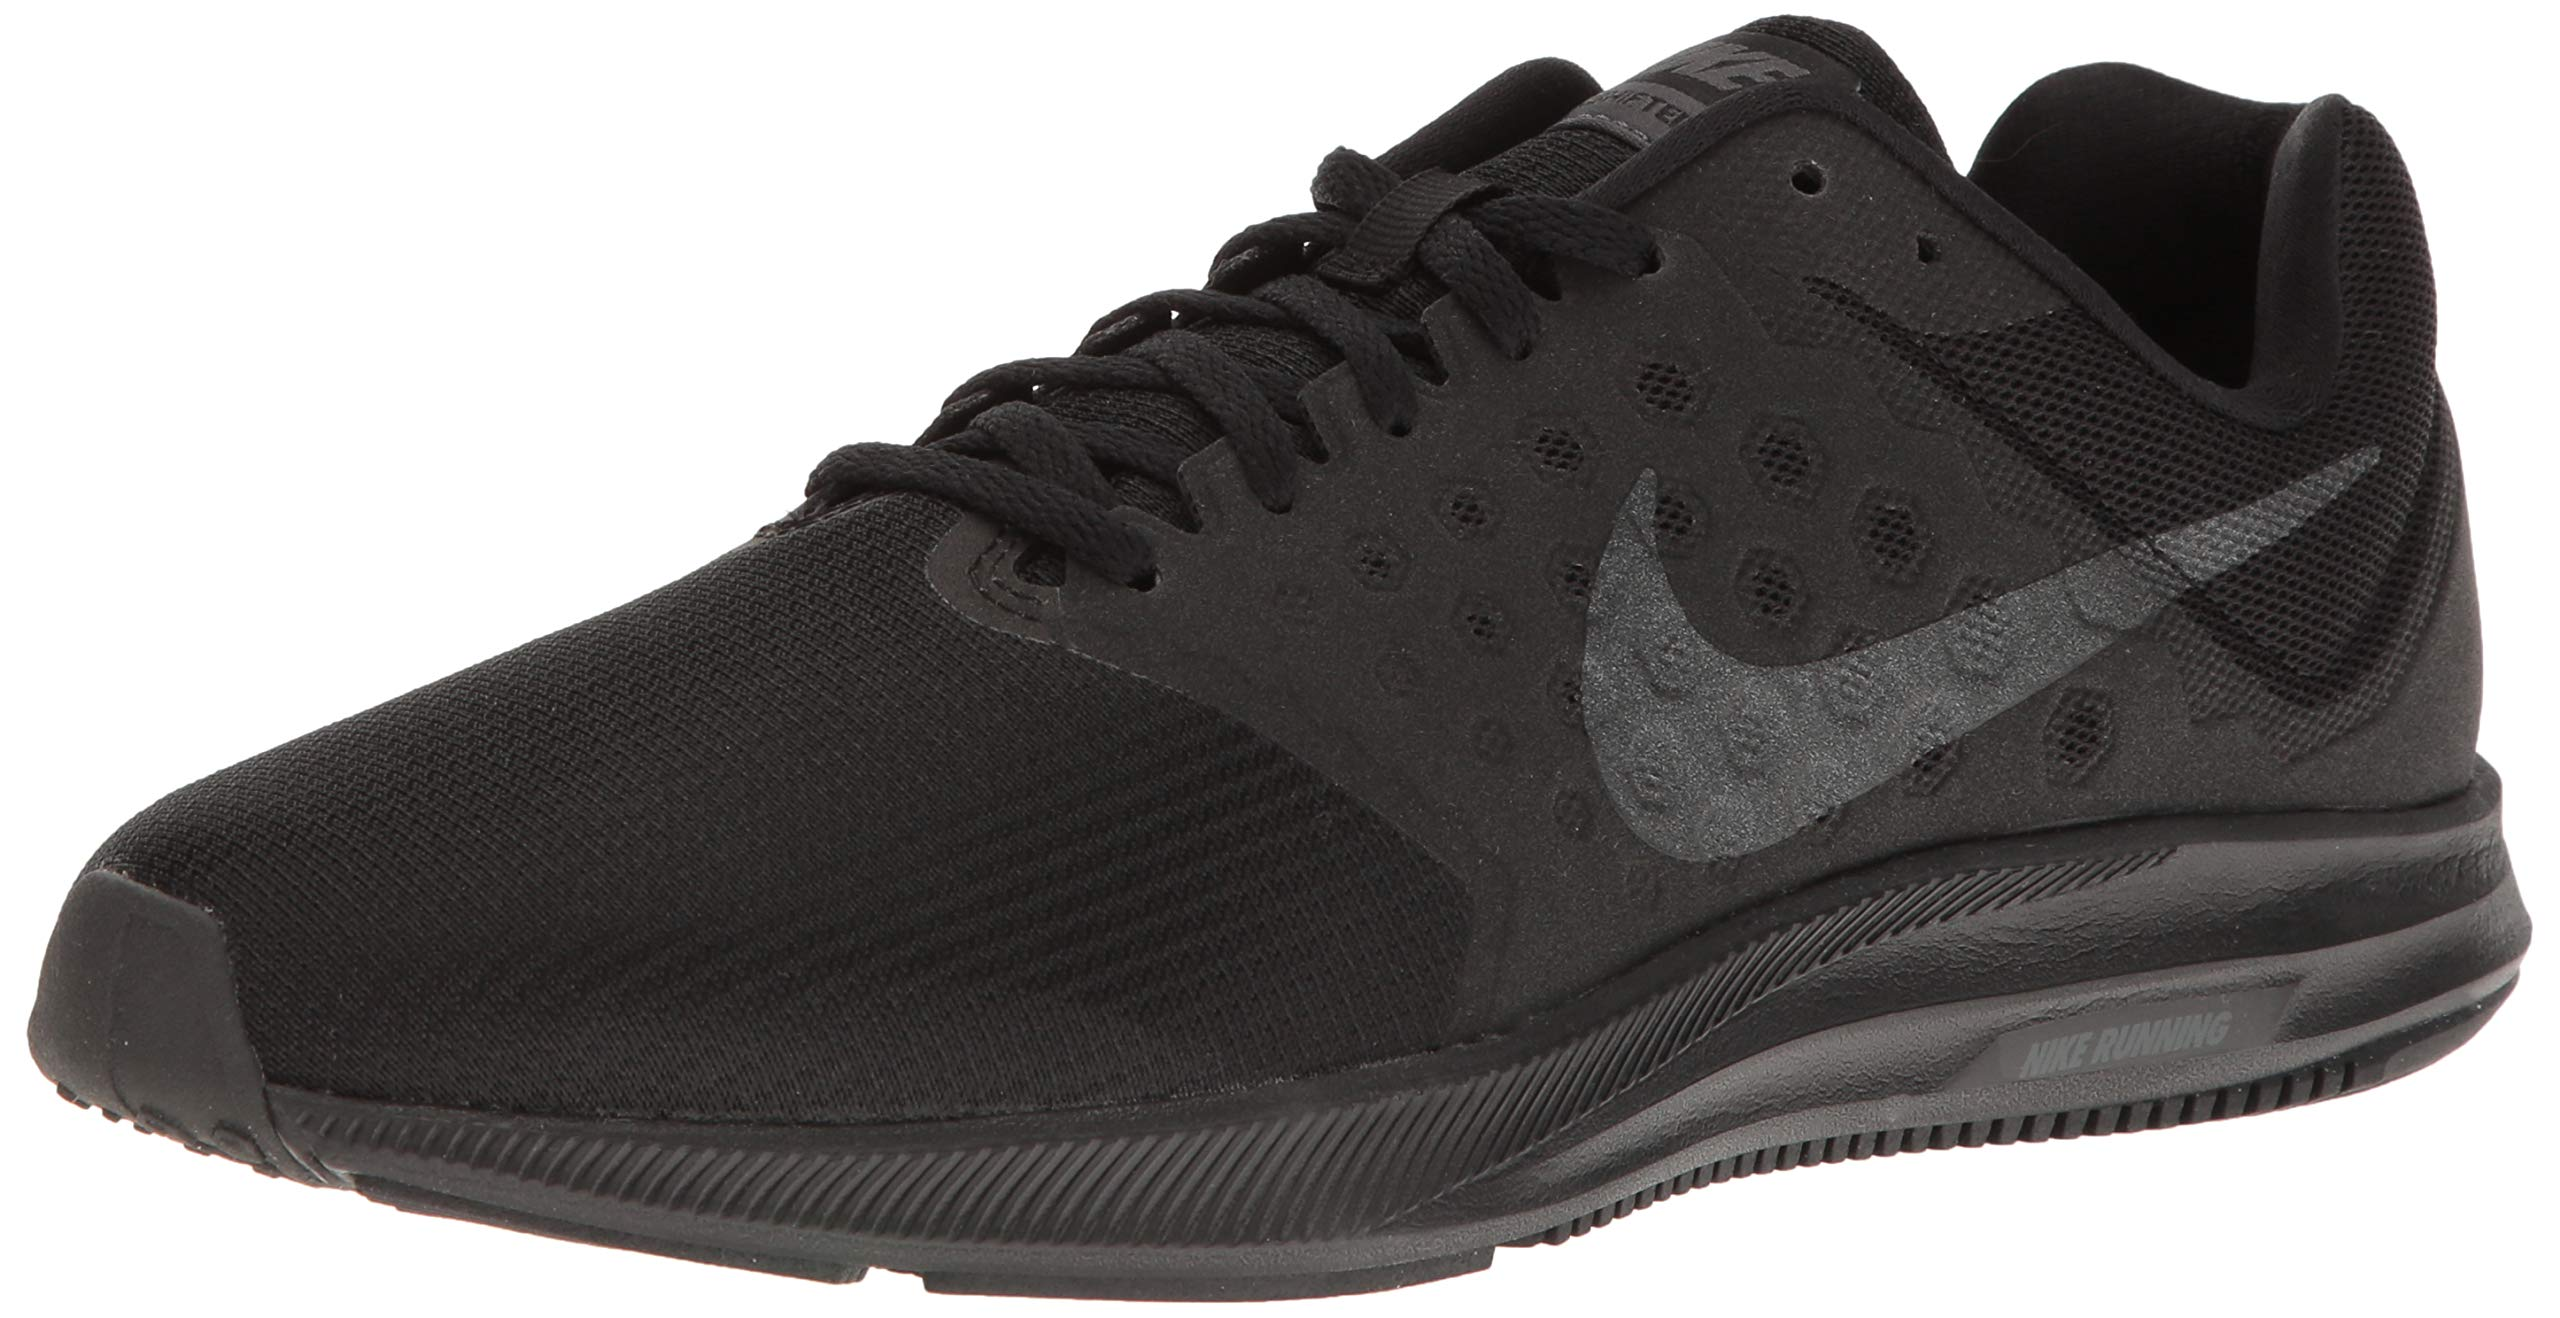 49be26956000 Galleon - Nike Men s Downshifter 7 Running Shoe